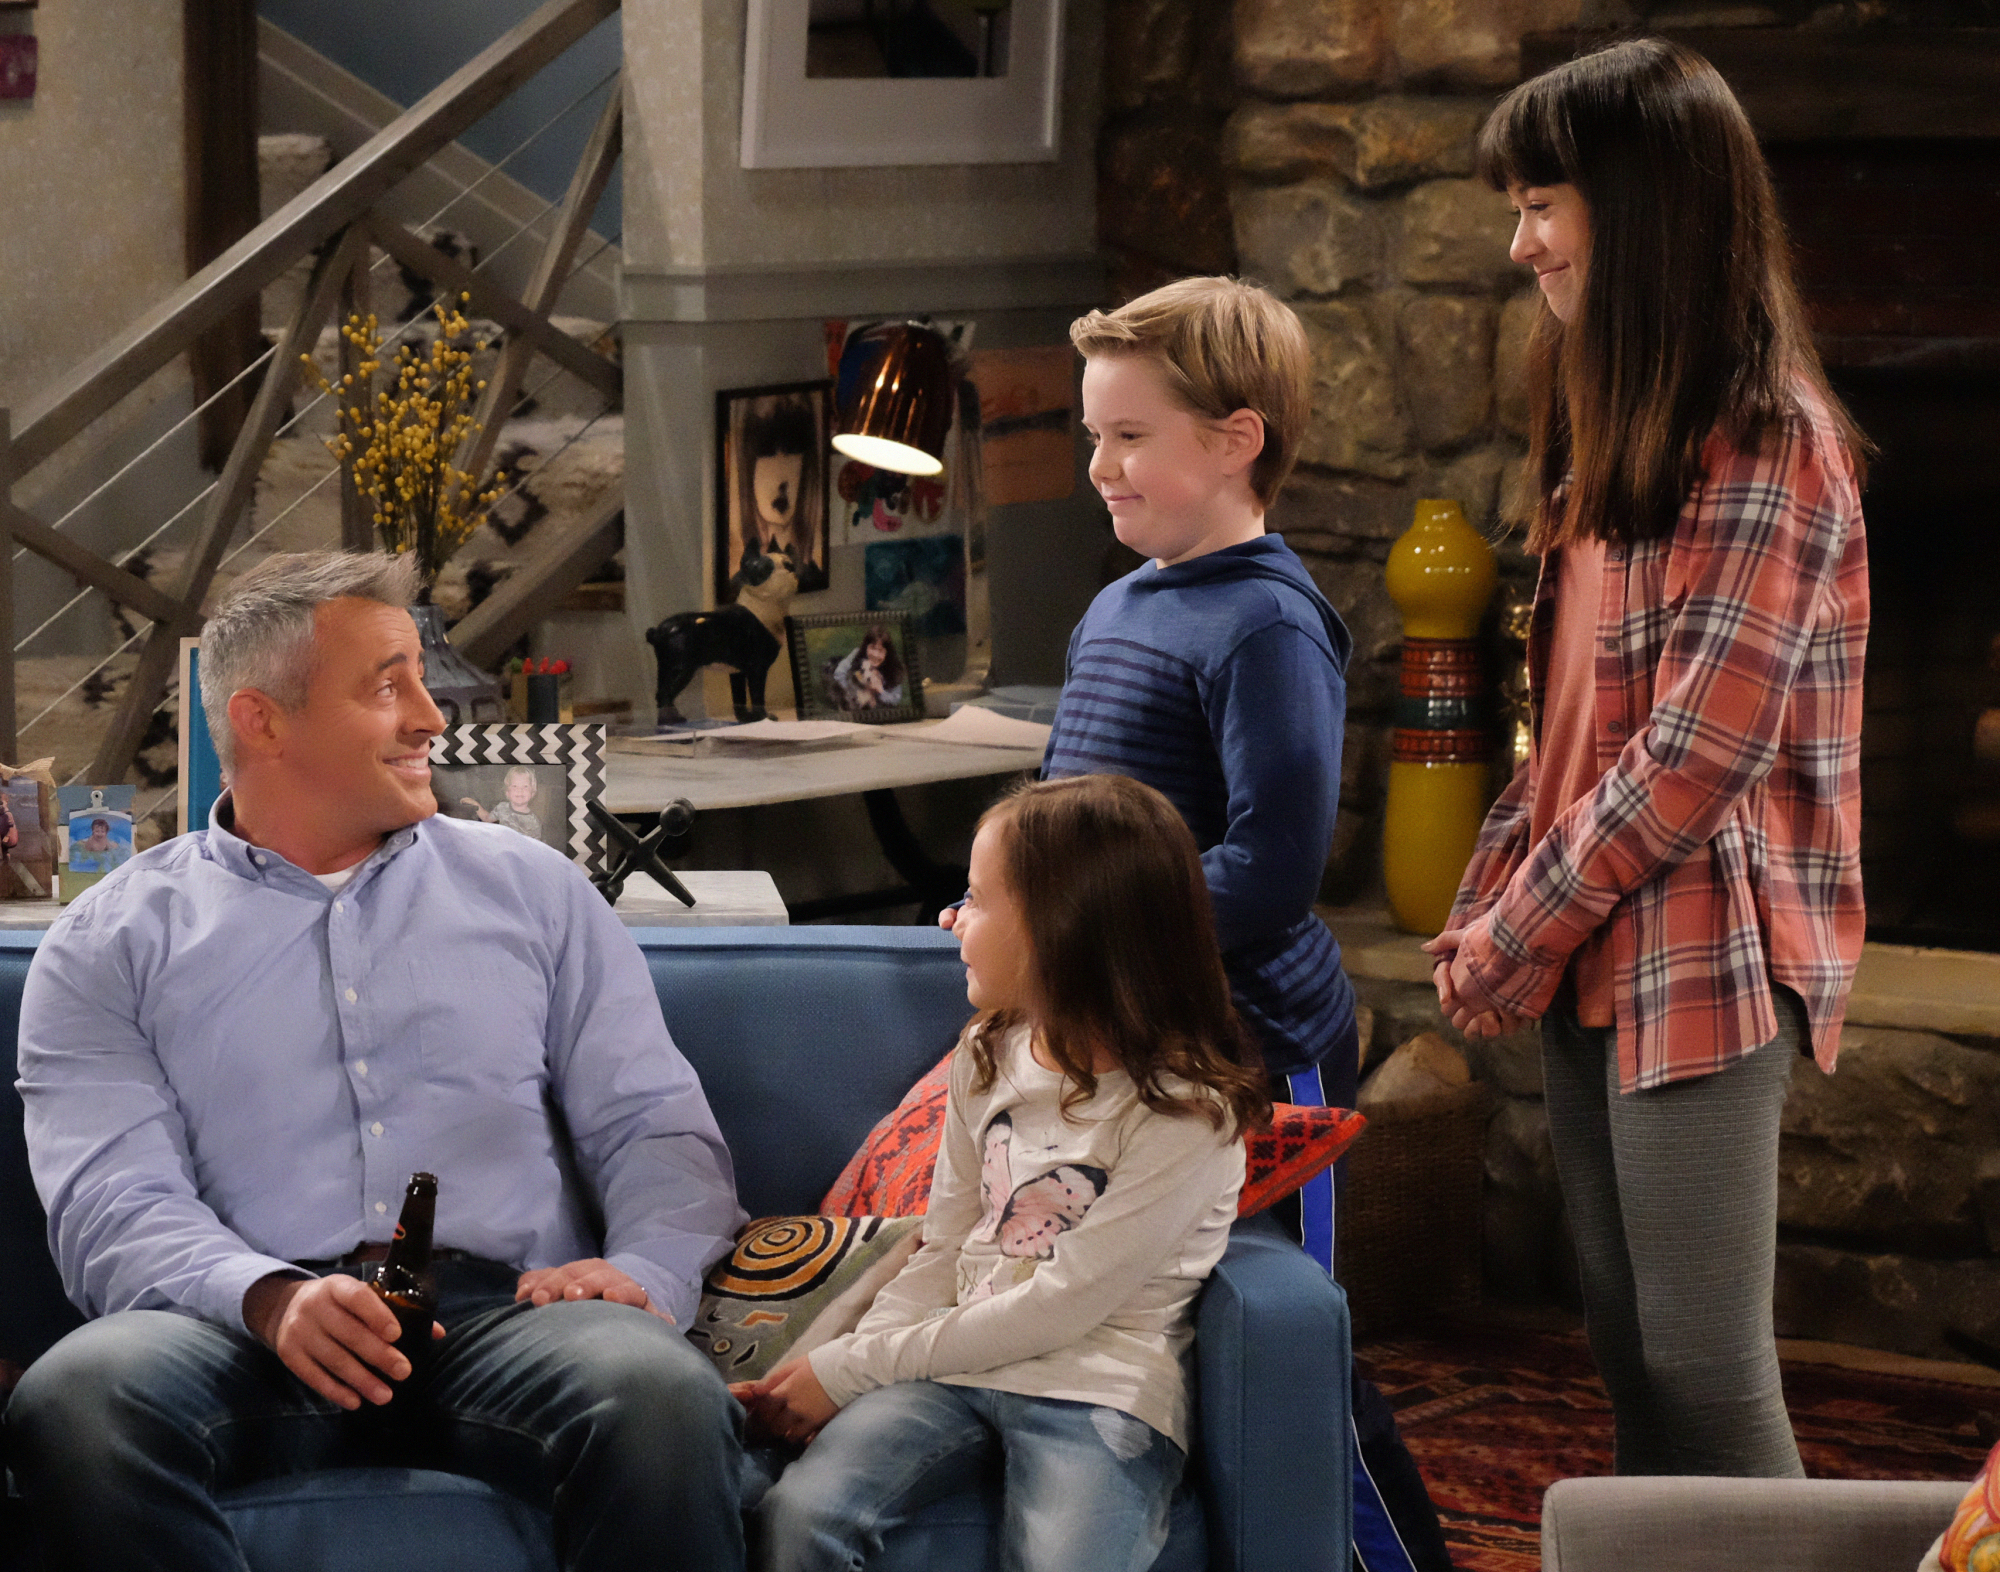 Matt LeBlanc as Adam, Hala Finley as Emme, Matthew McCann as Teddy, and Grace Kaufman as Kate